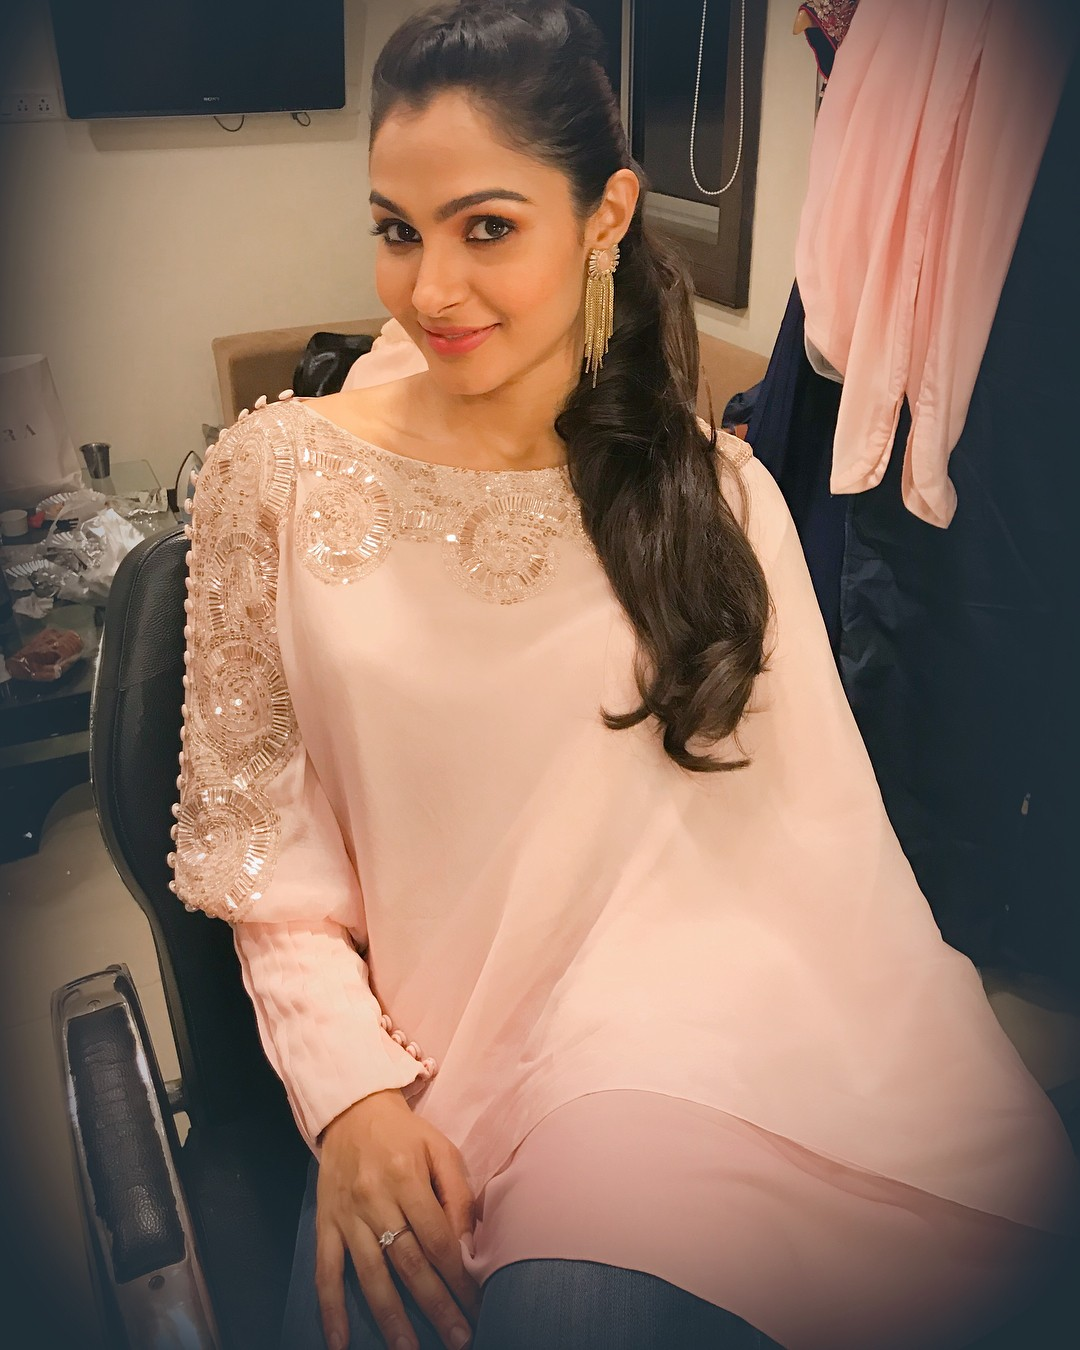 Latest Andrea Jeremiah Instagram Pictures - Sexy Actress Pictures | Hot Actress Pictures